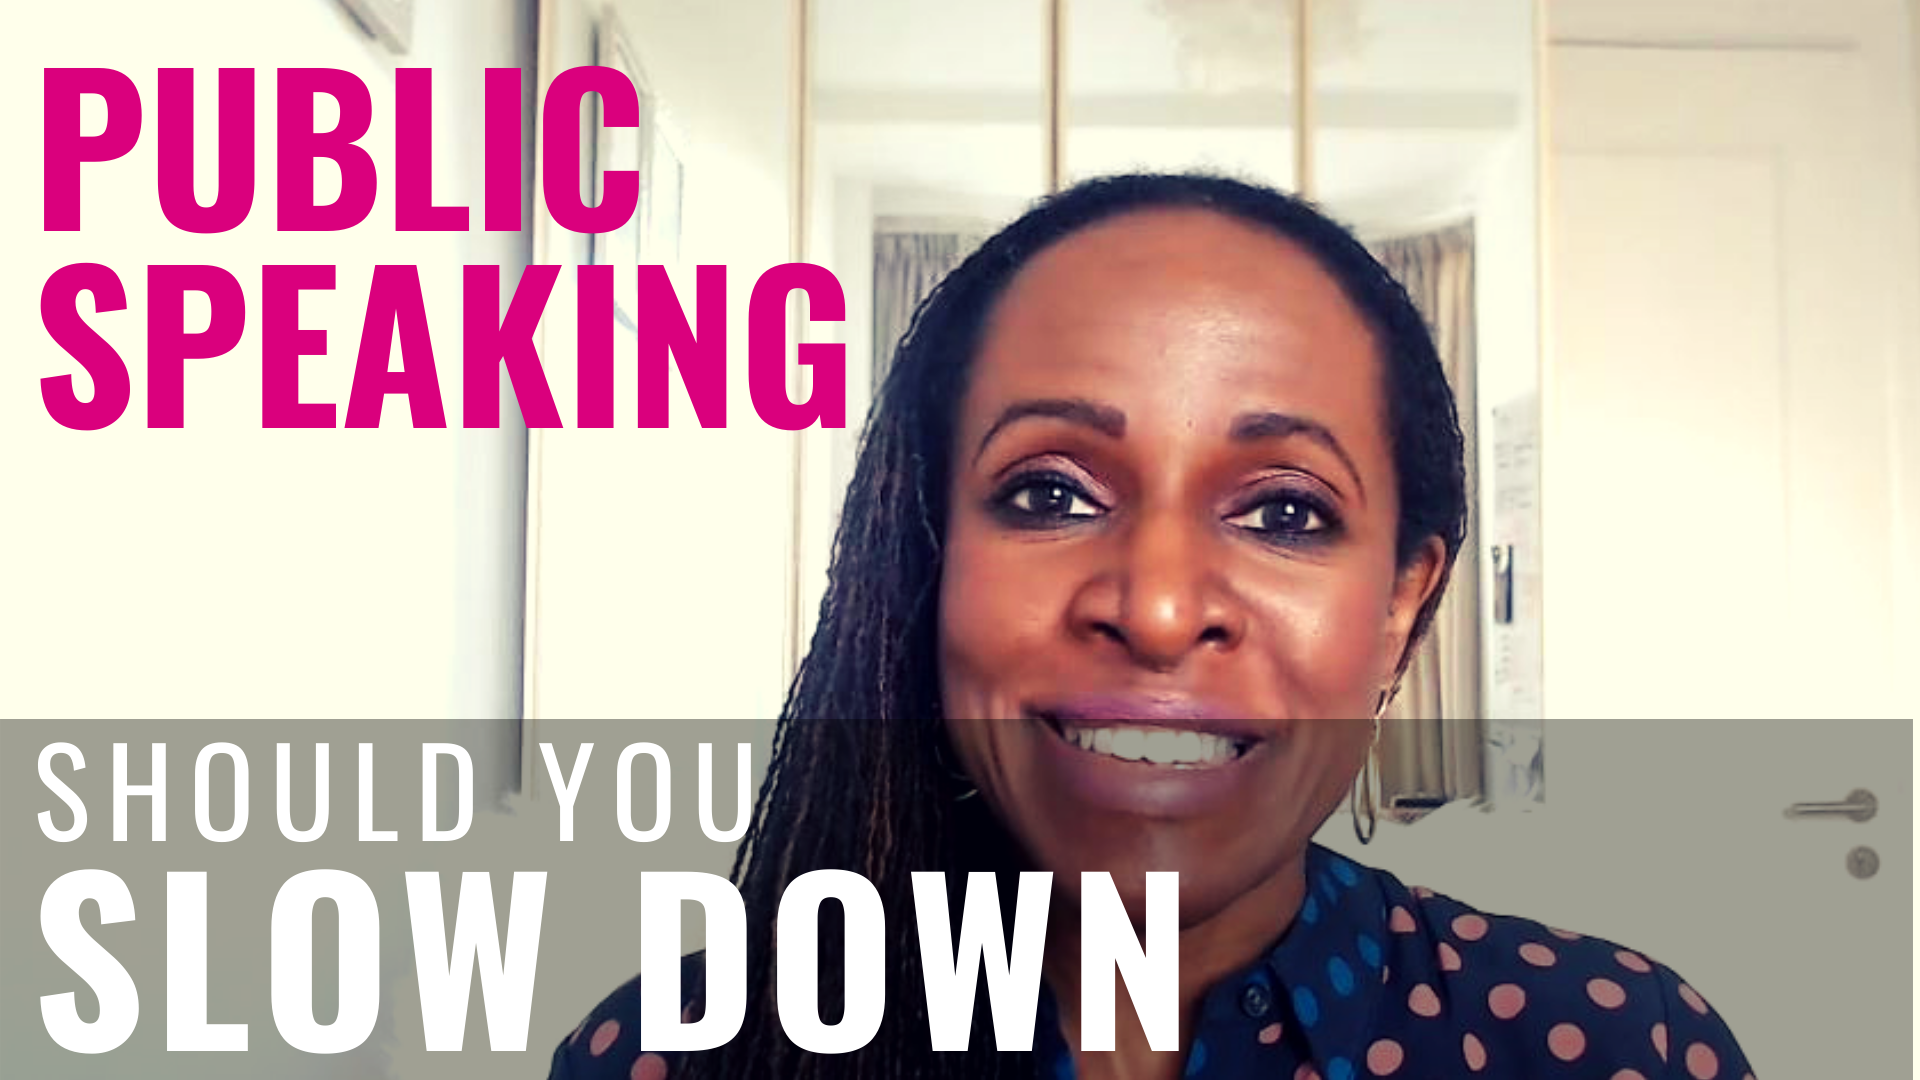 PUBLIC SPEAKING - Should you SLOW DOWN